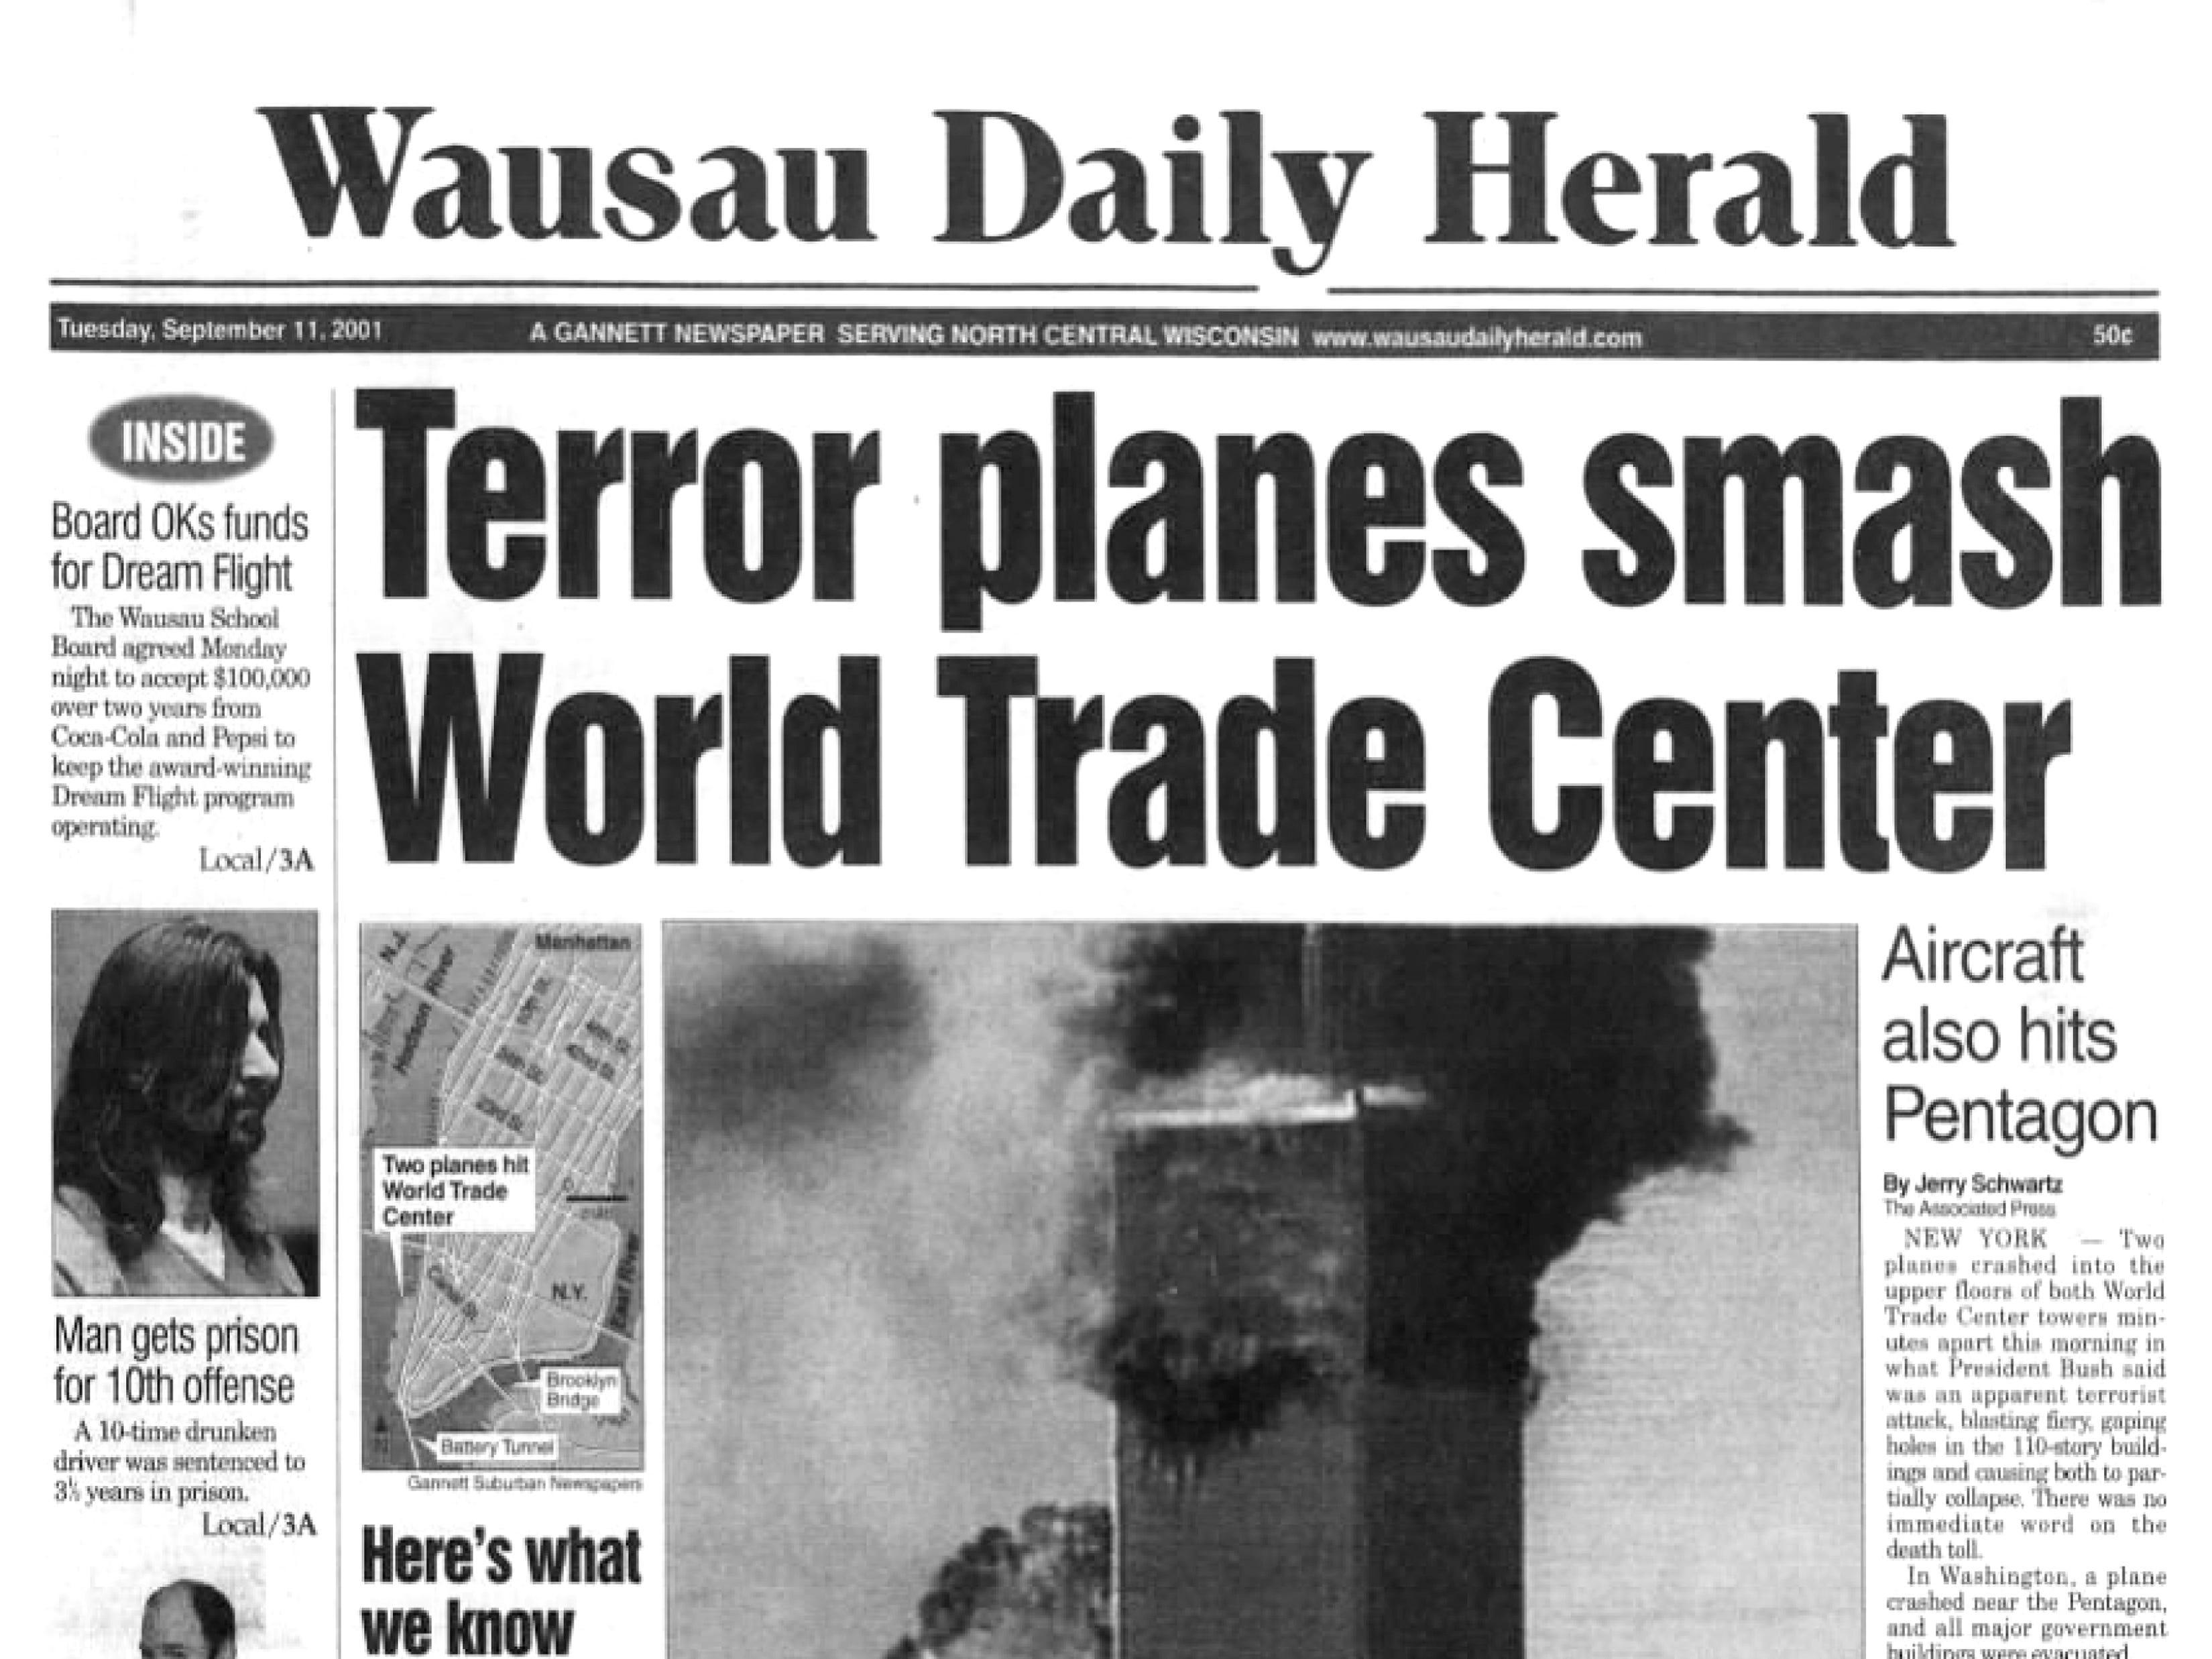 Front page of The Wausau Daily Herald on Sept. 12, 2001